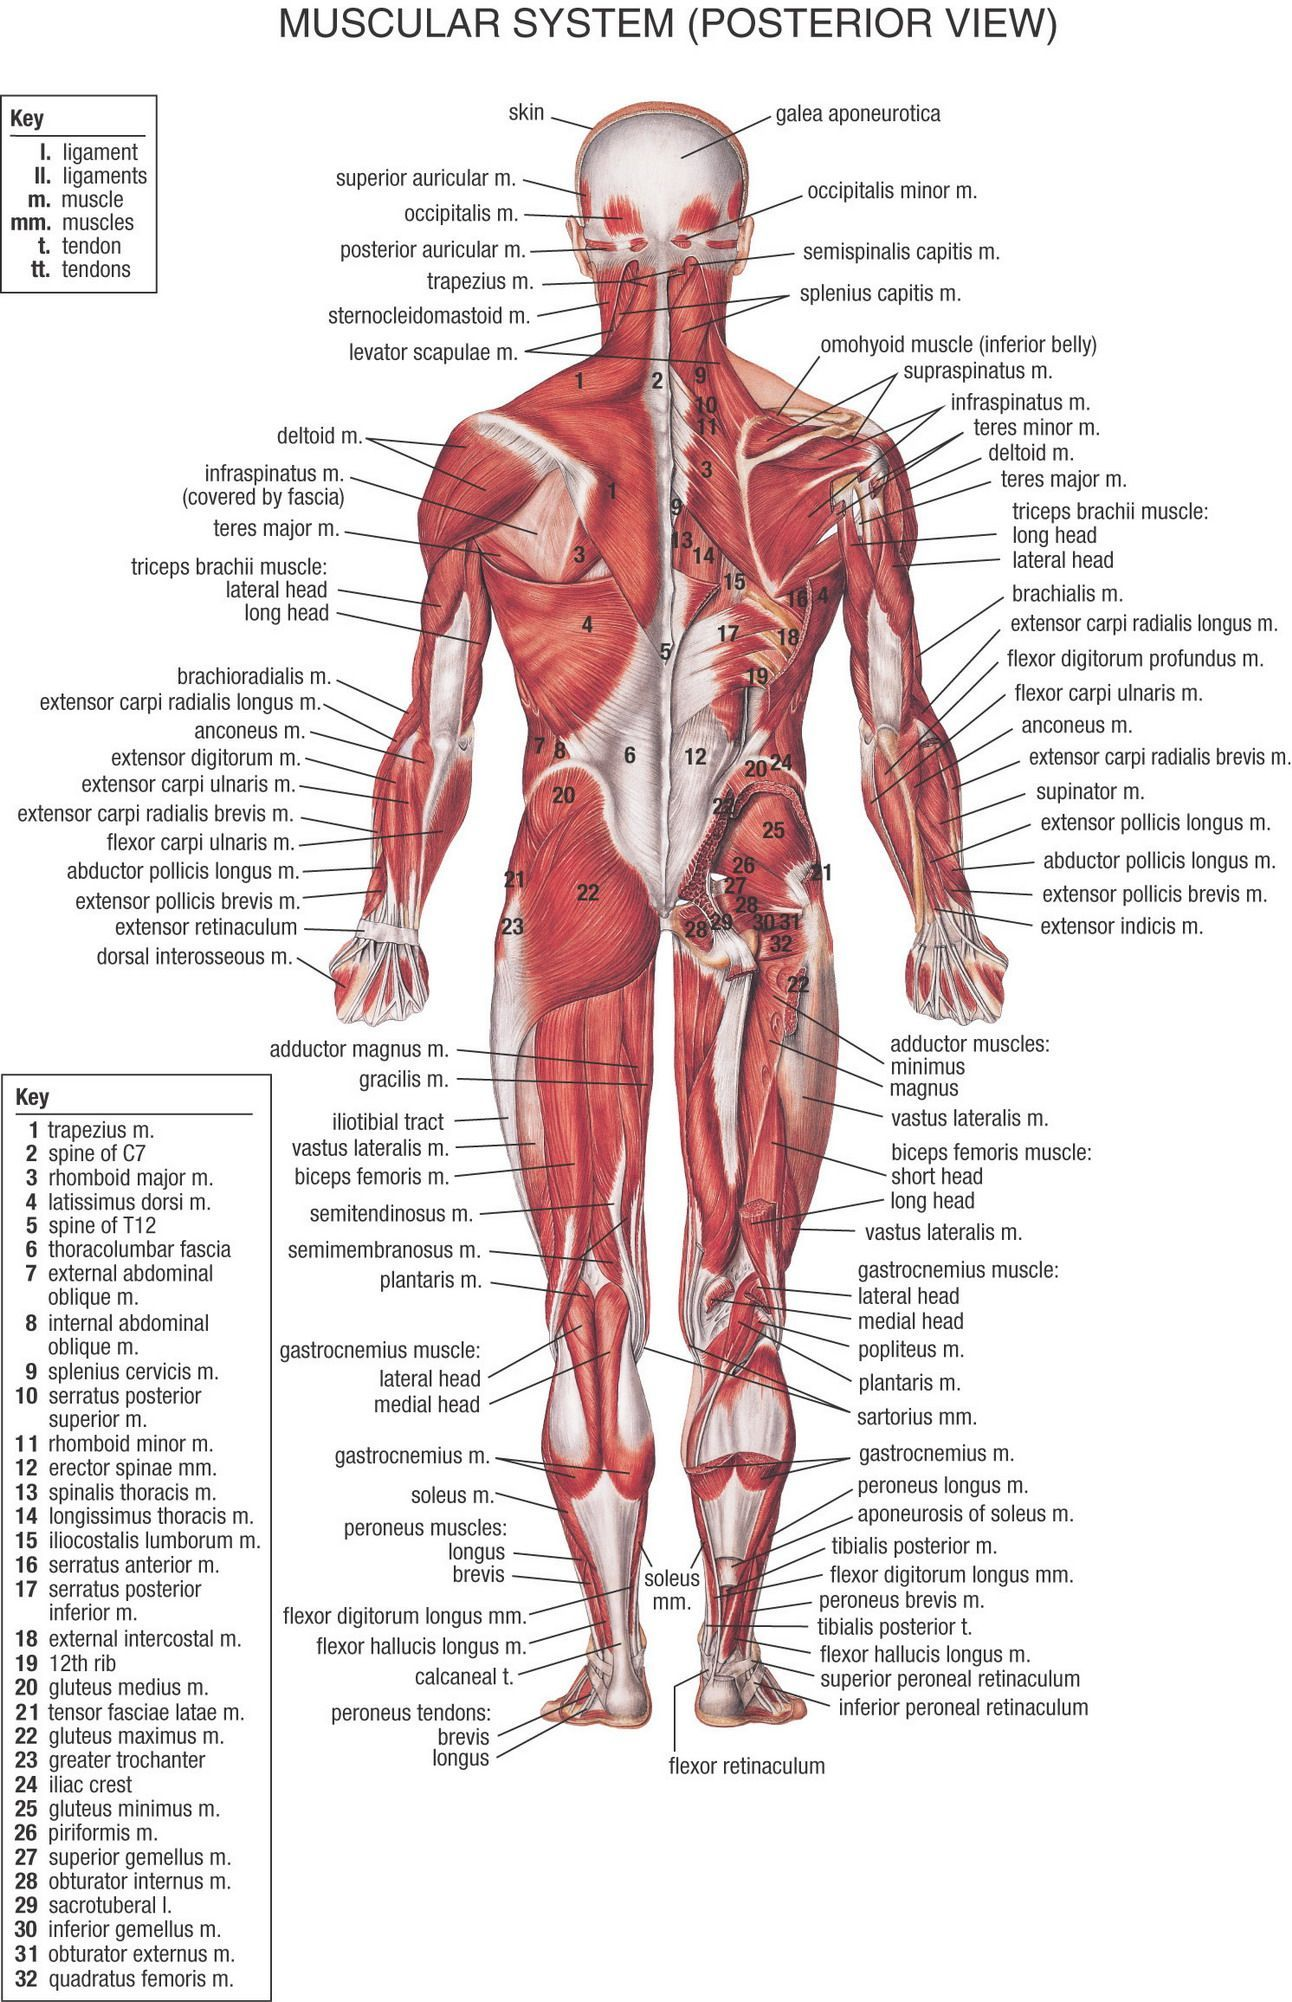 Image Result For Muscular System Dorsal View Anatomia Muscular